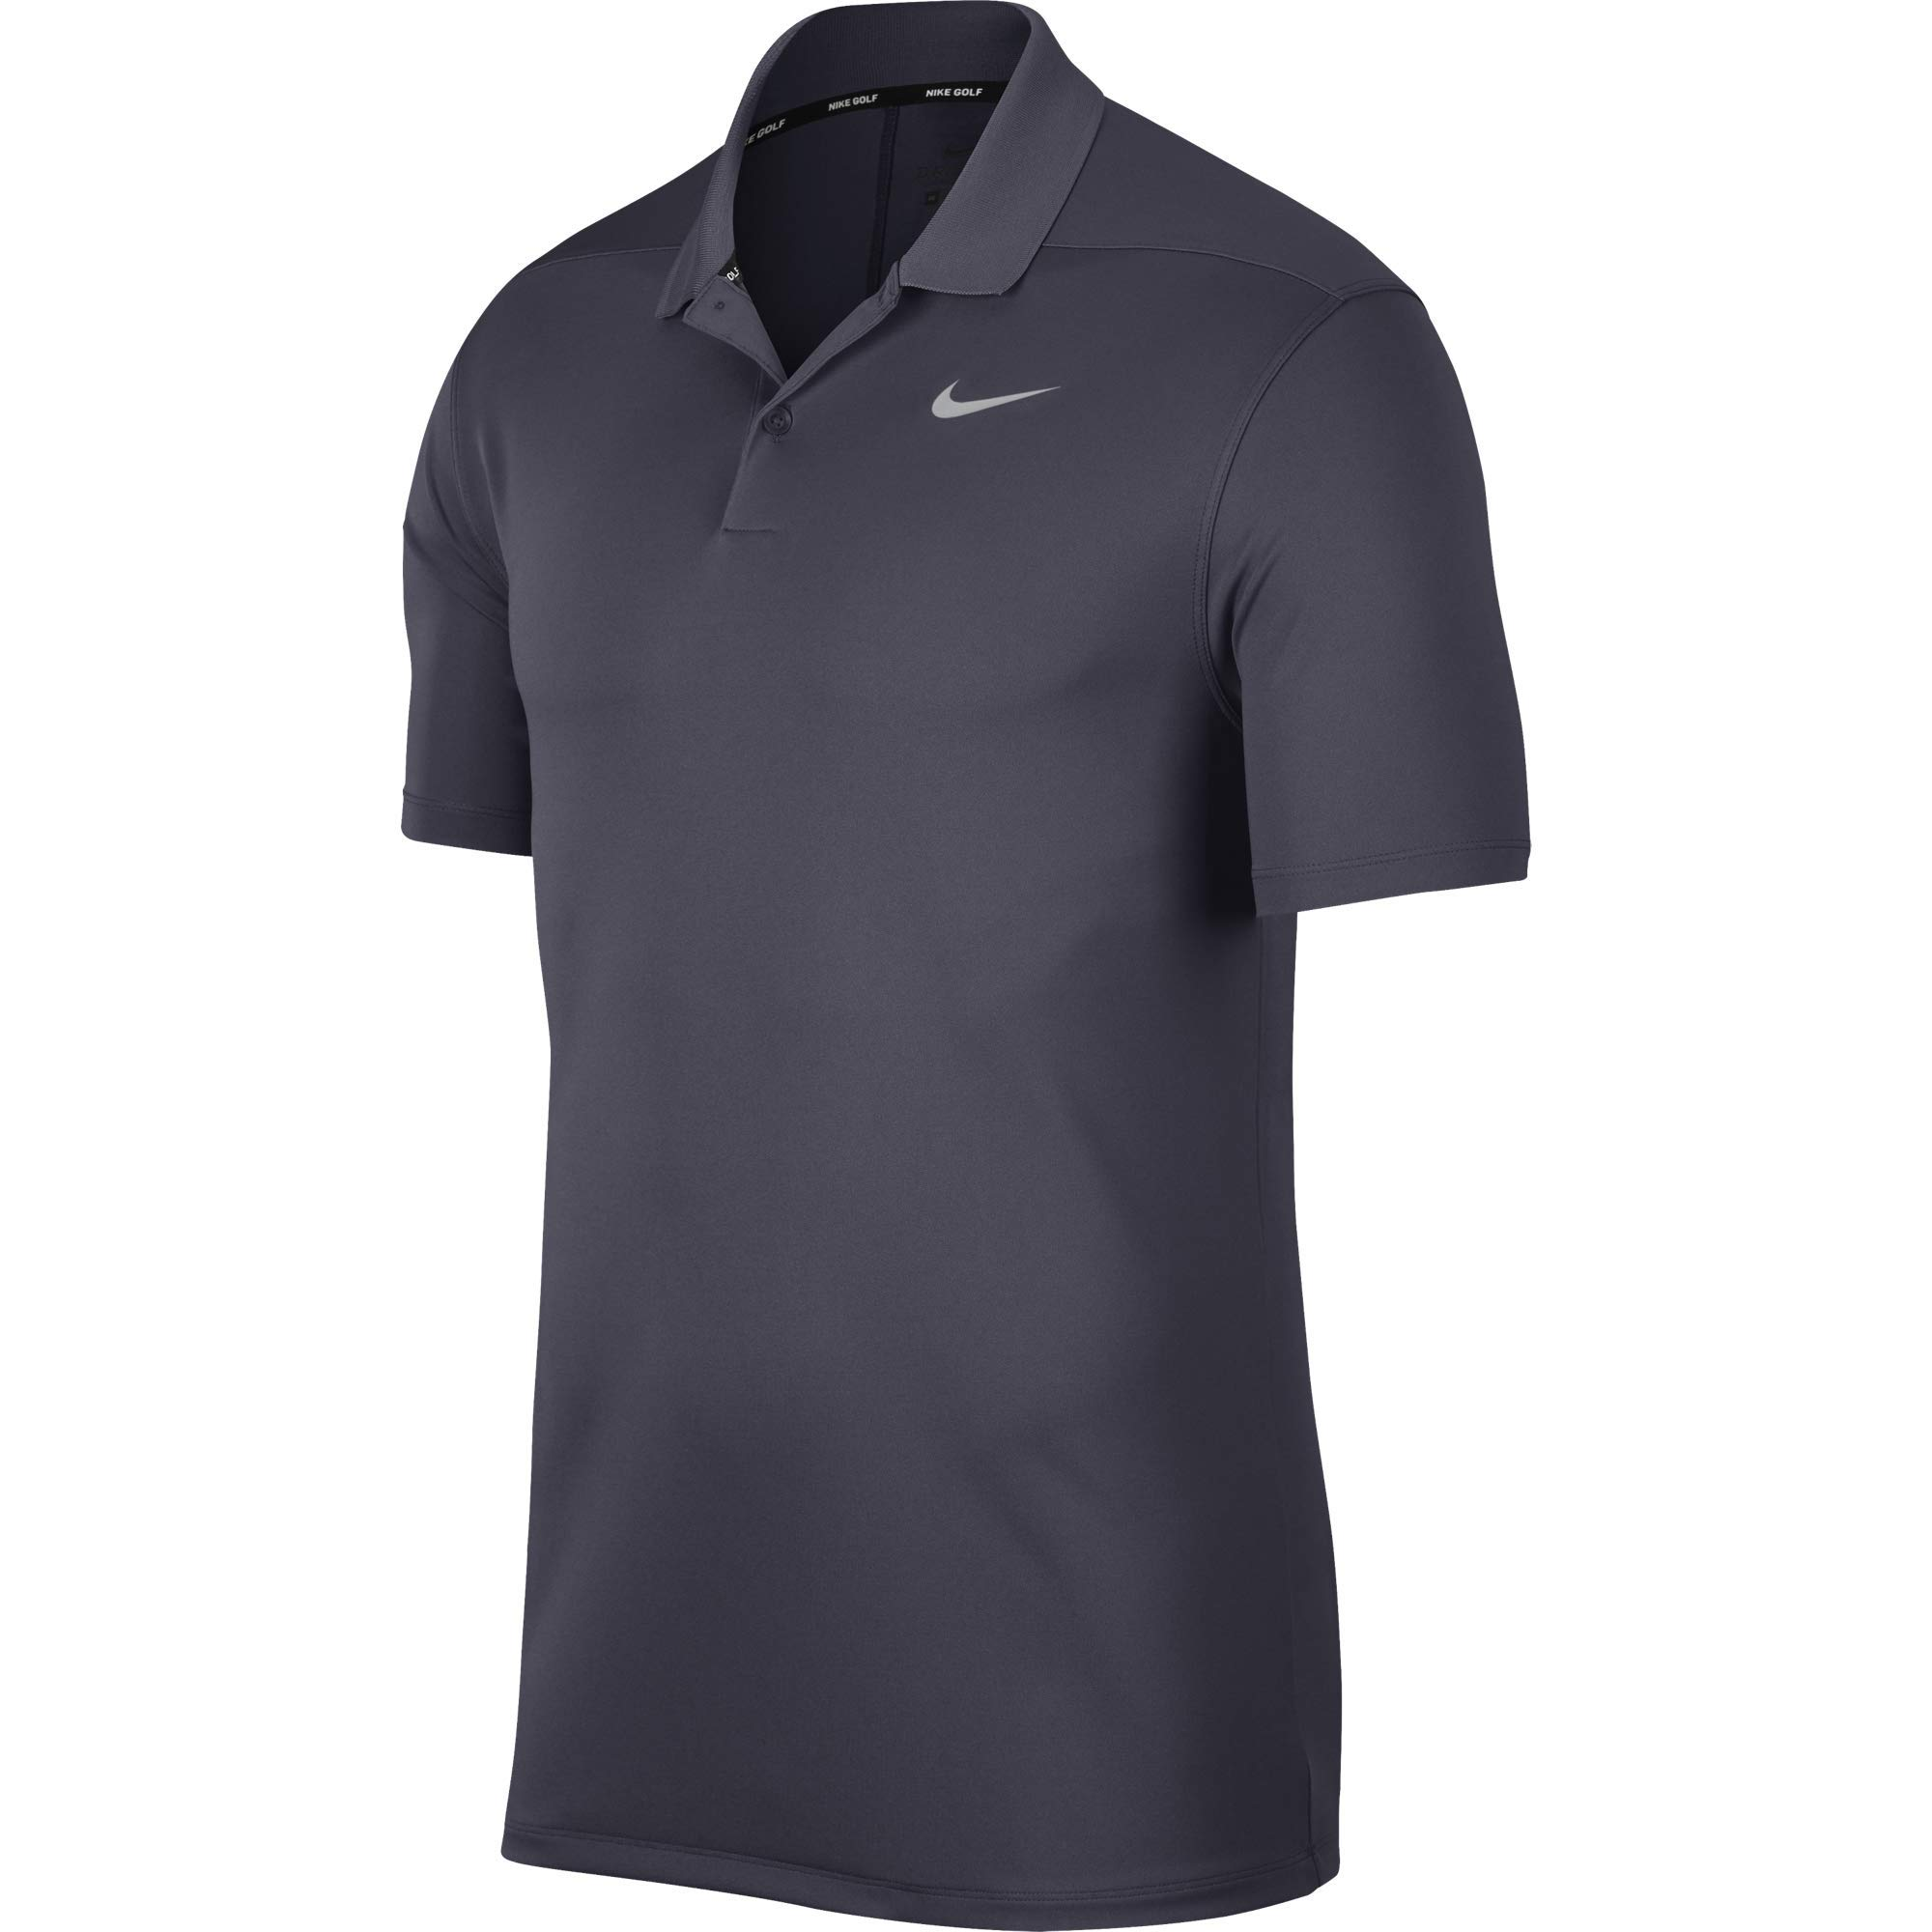 Nike Men's Dry Victory Polo Solid Left Chest, Gridiron/Flight Silver, Small